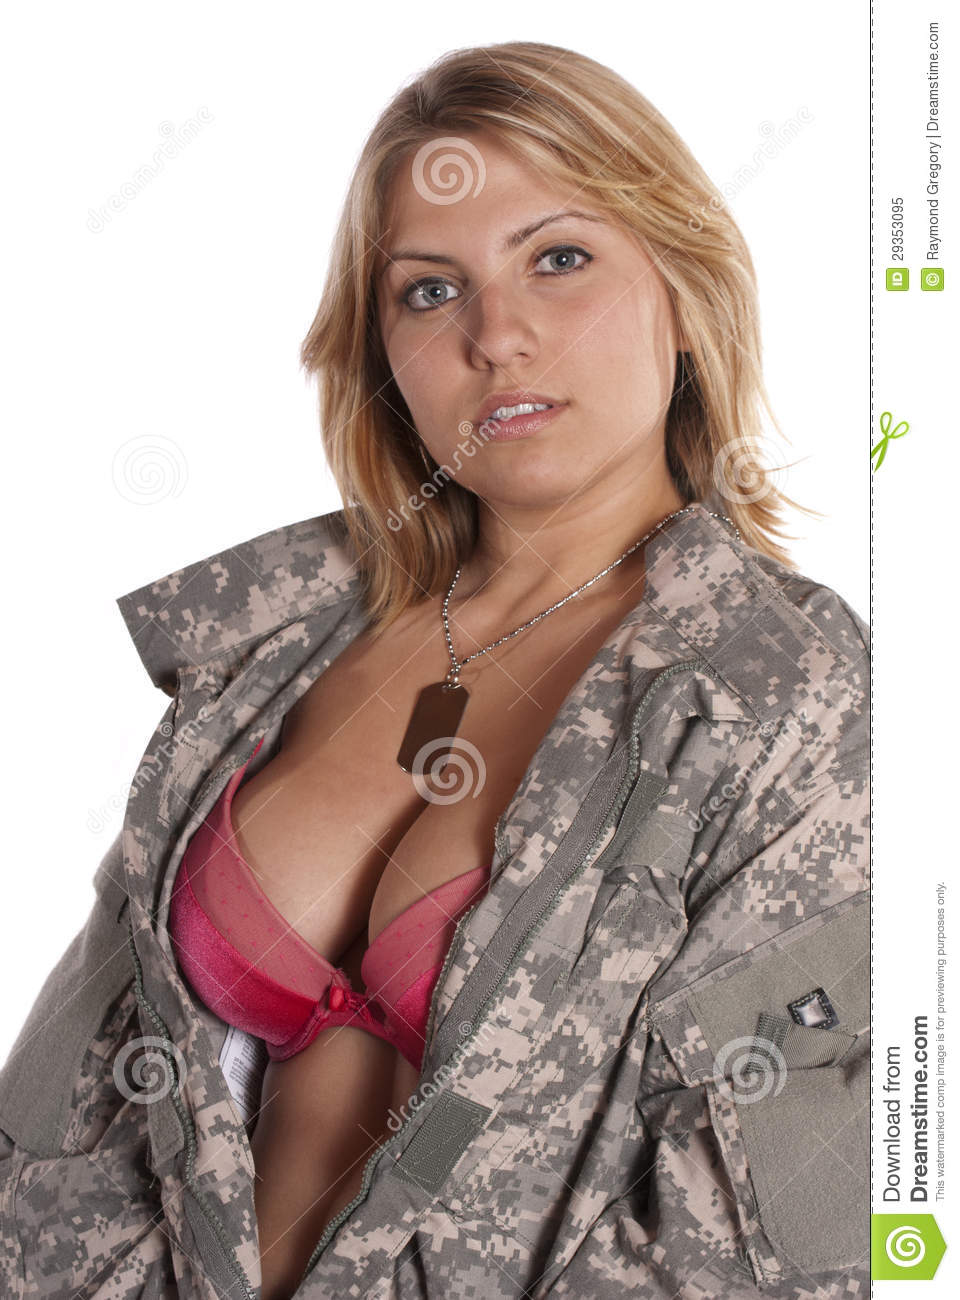 Pin Up Girl Implied Nude Military Uniform Stock Image -5617